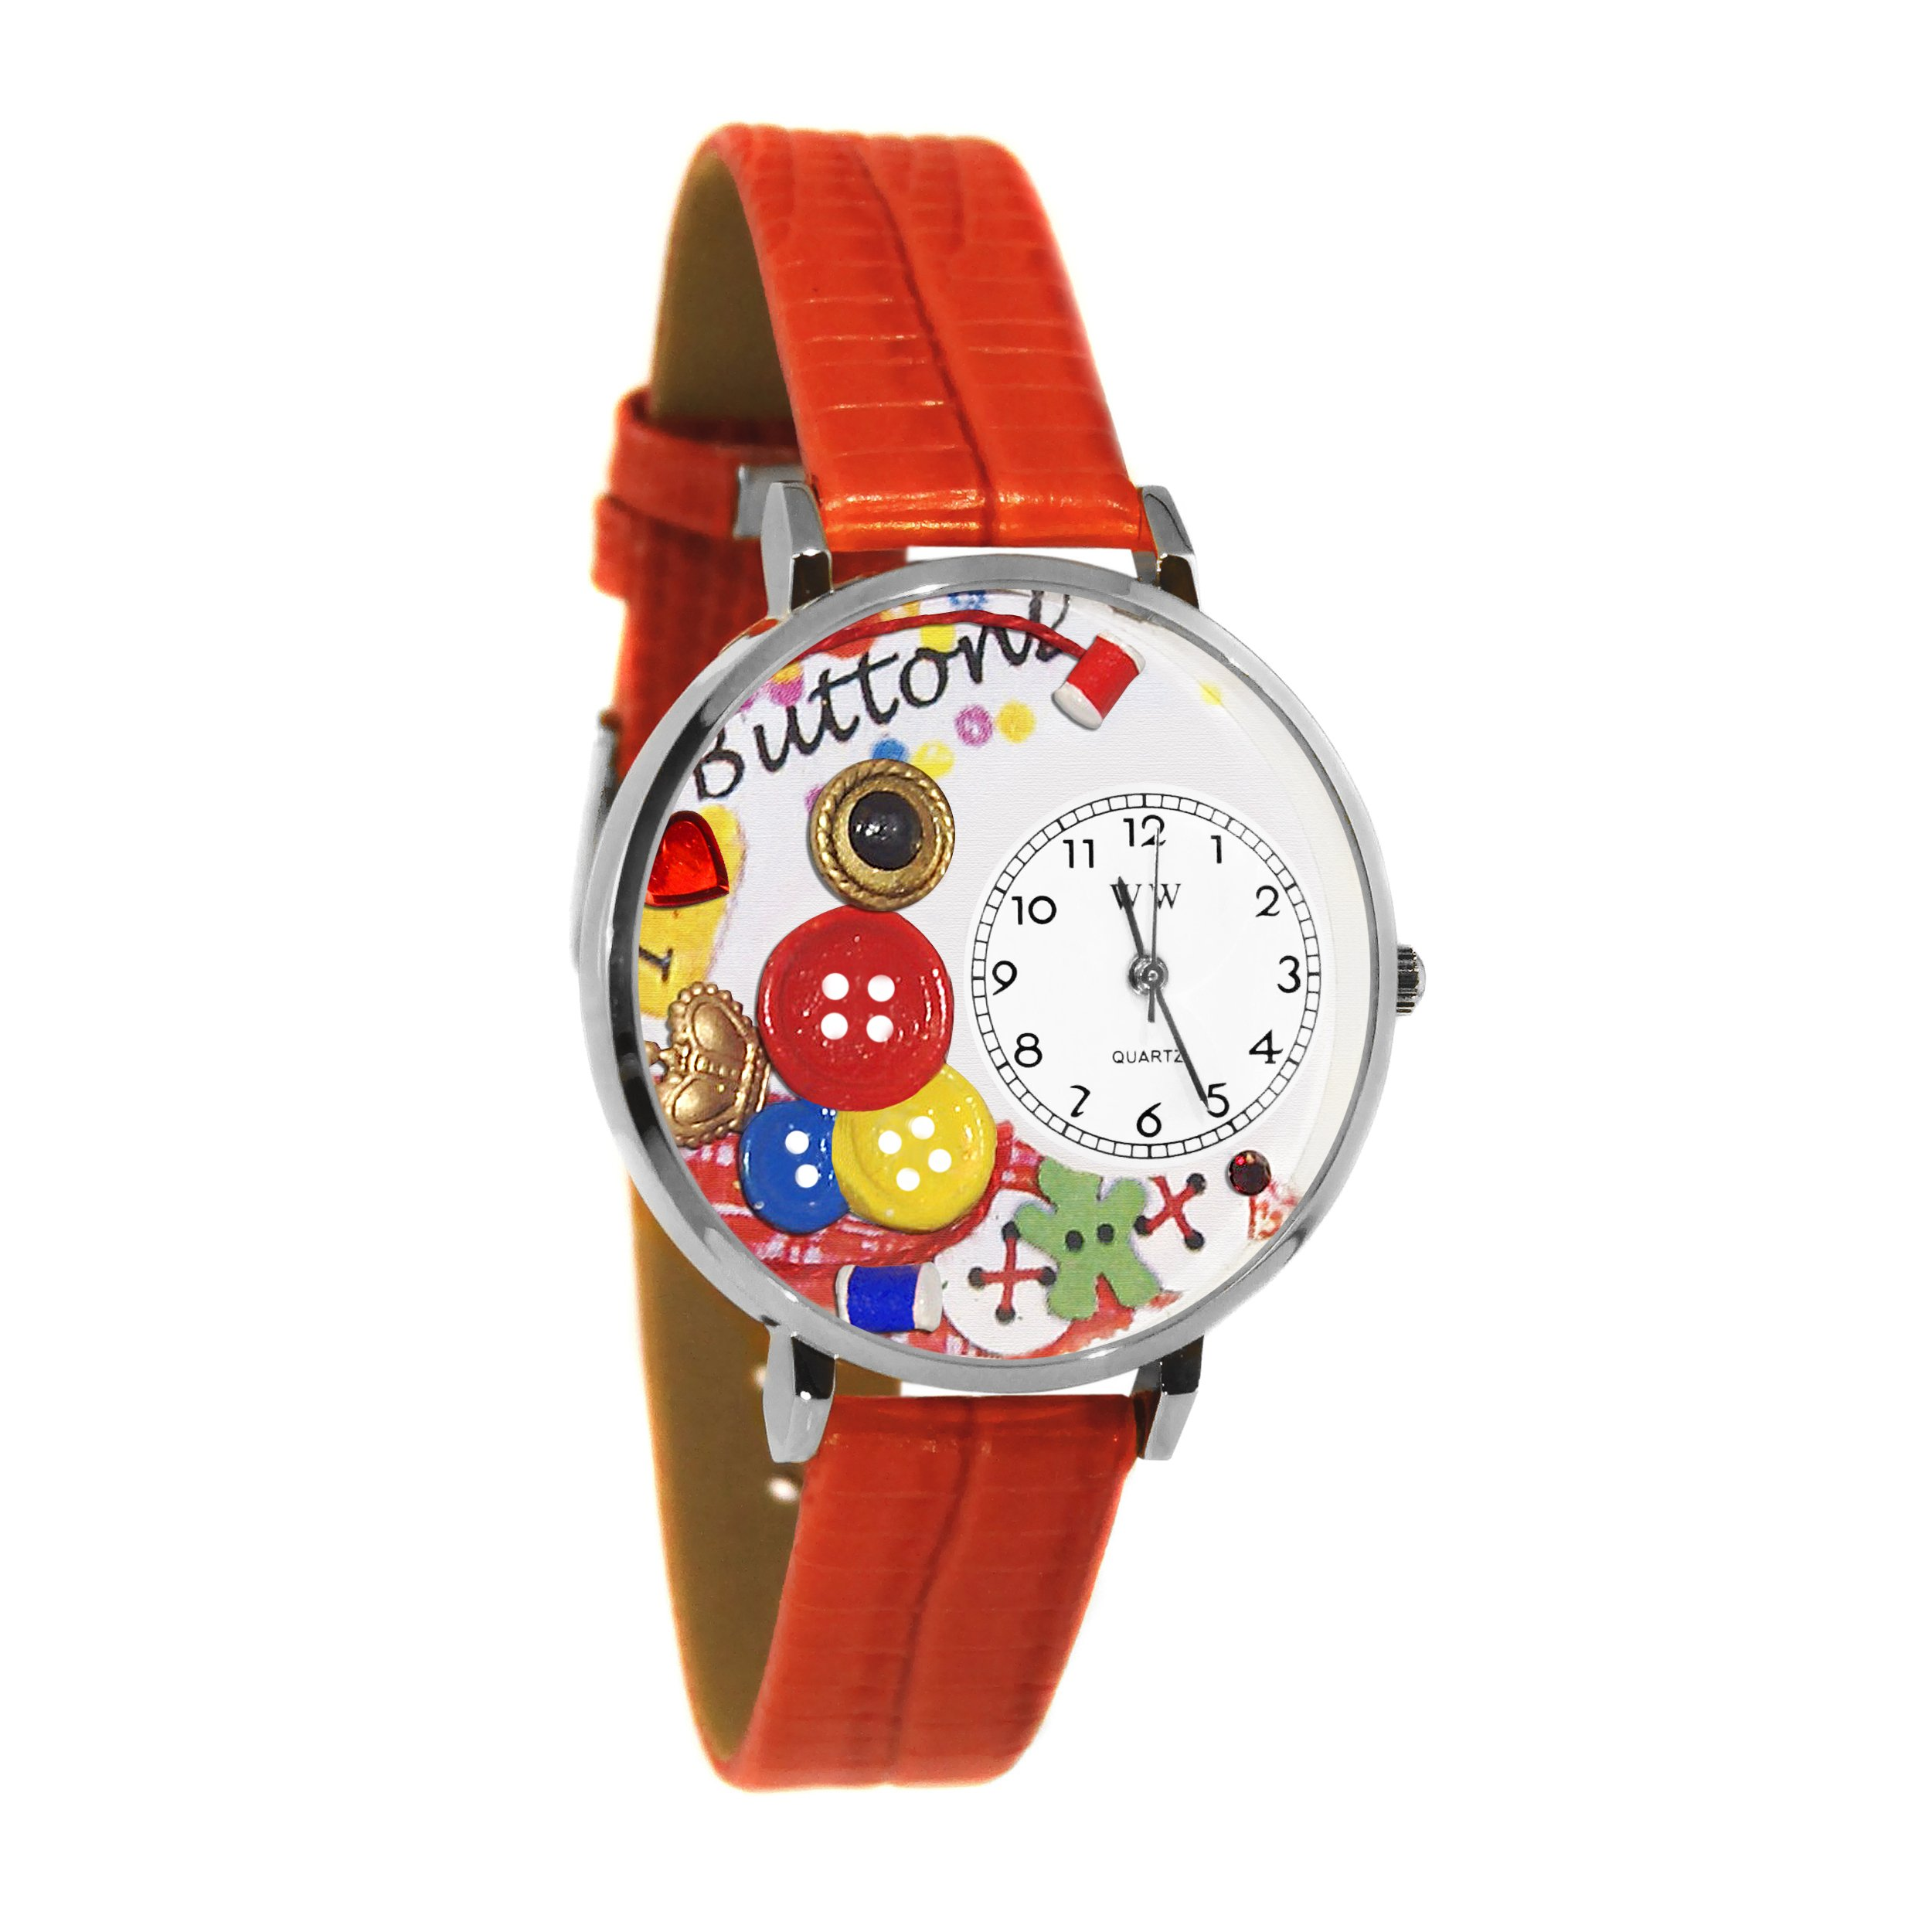 I Love Buttons Red Leather And Silvertone Watch #WG-U0410011